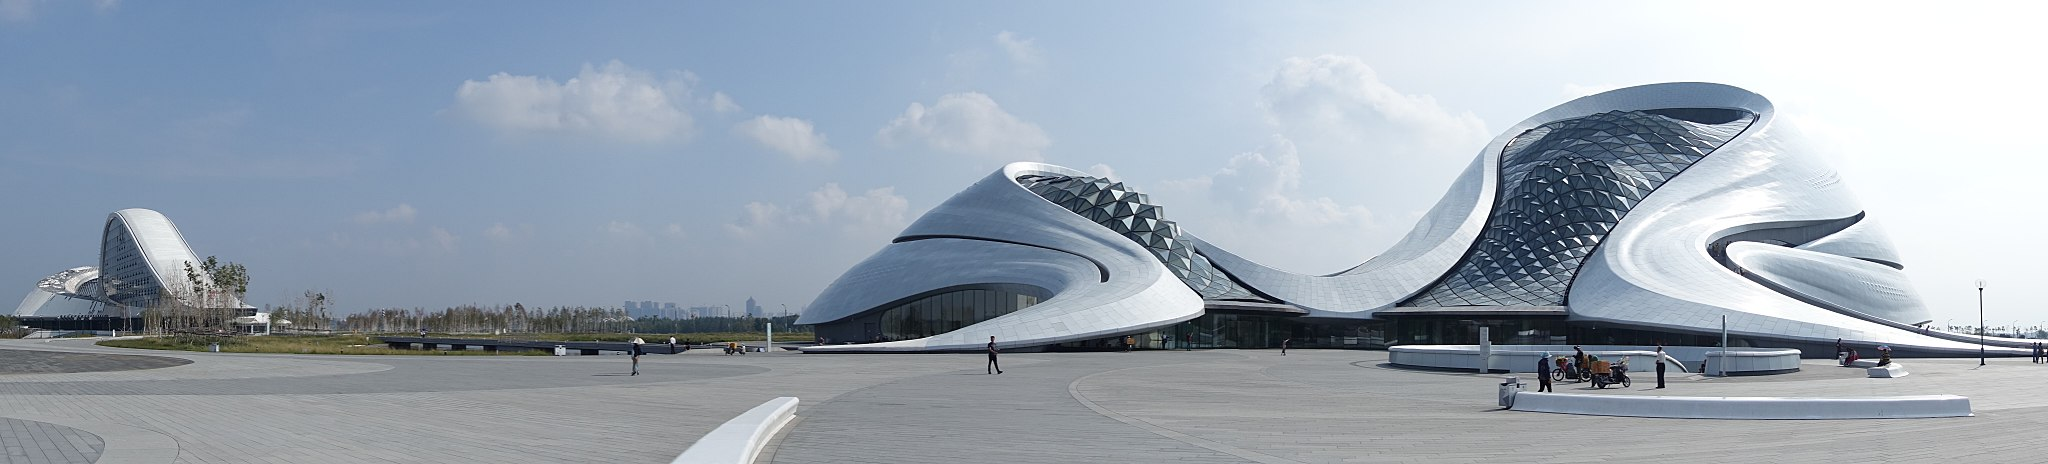 Harbin Grand Theatre, designed by MAD Studio. Located in Harbin's Songbei District, the opera house is surrounded by wetlands and waterways of Songhua River. Harbin Grand Theatre Pano 201609.jpg